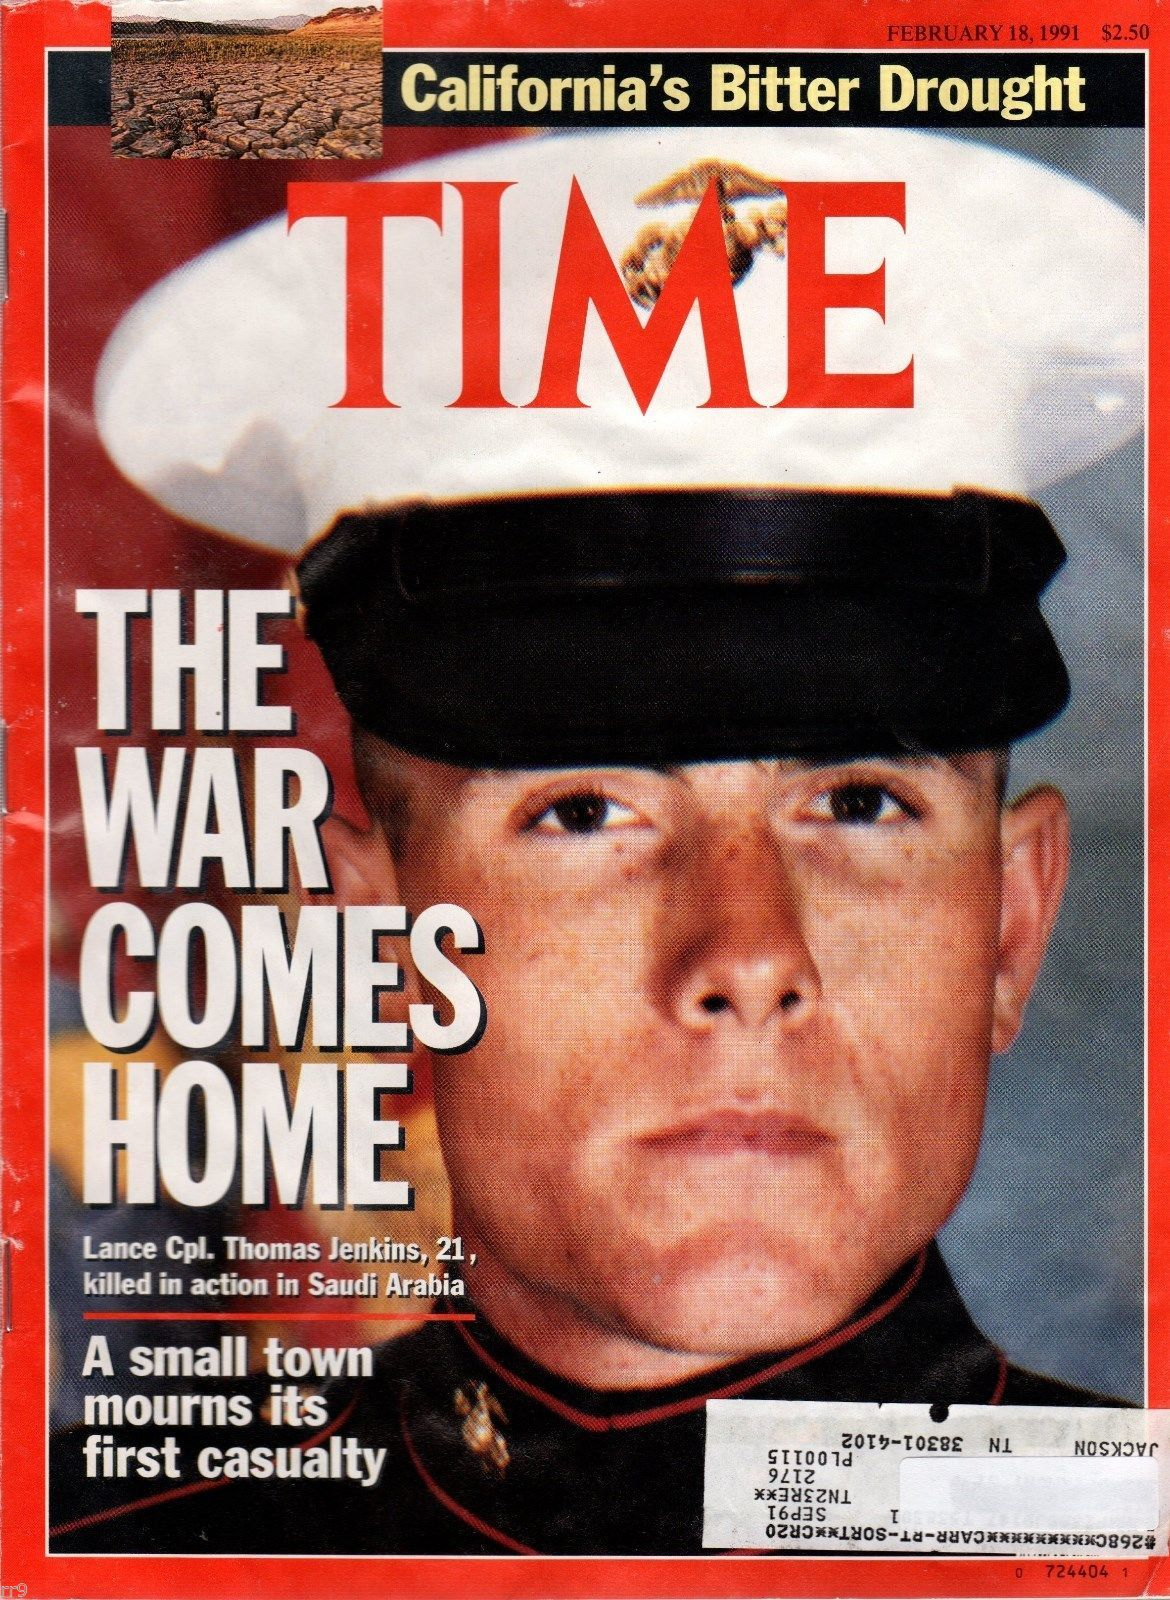 Primary image for Time Magazine - February 18, 1991